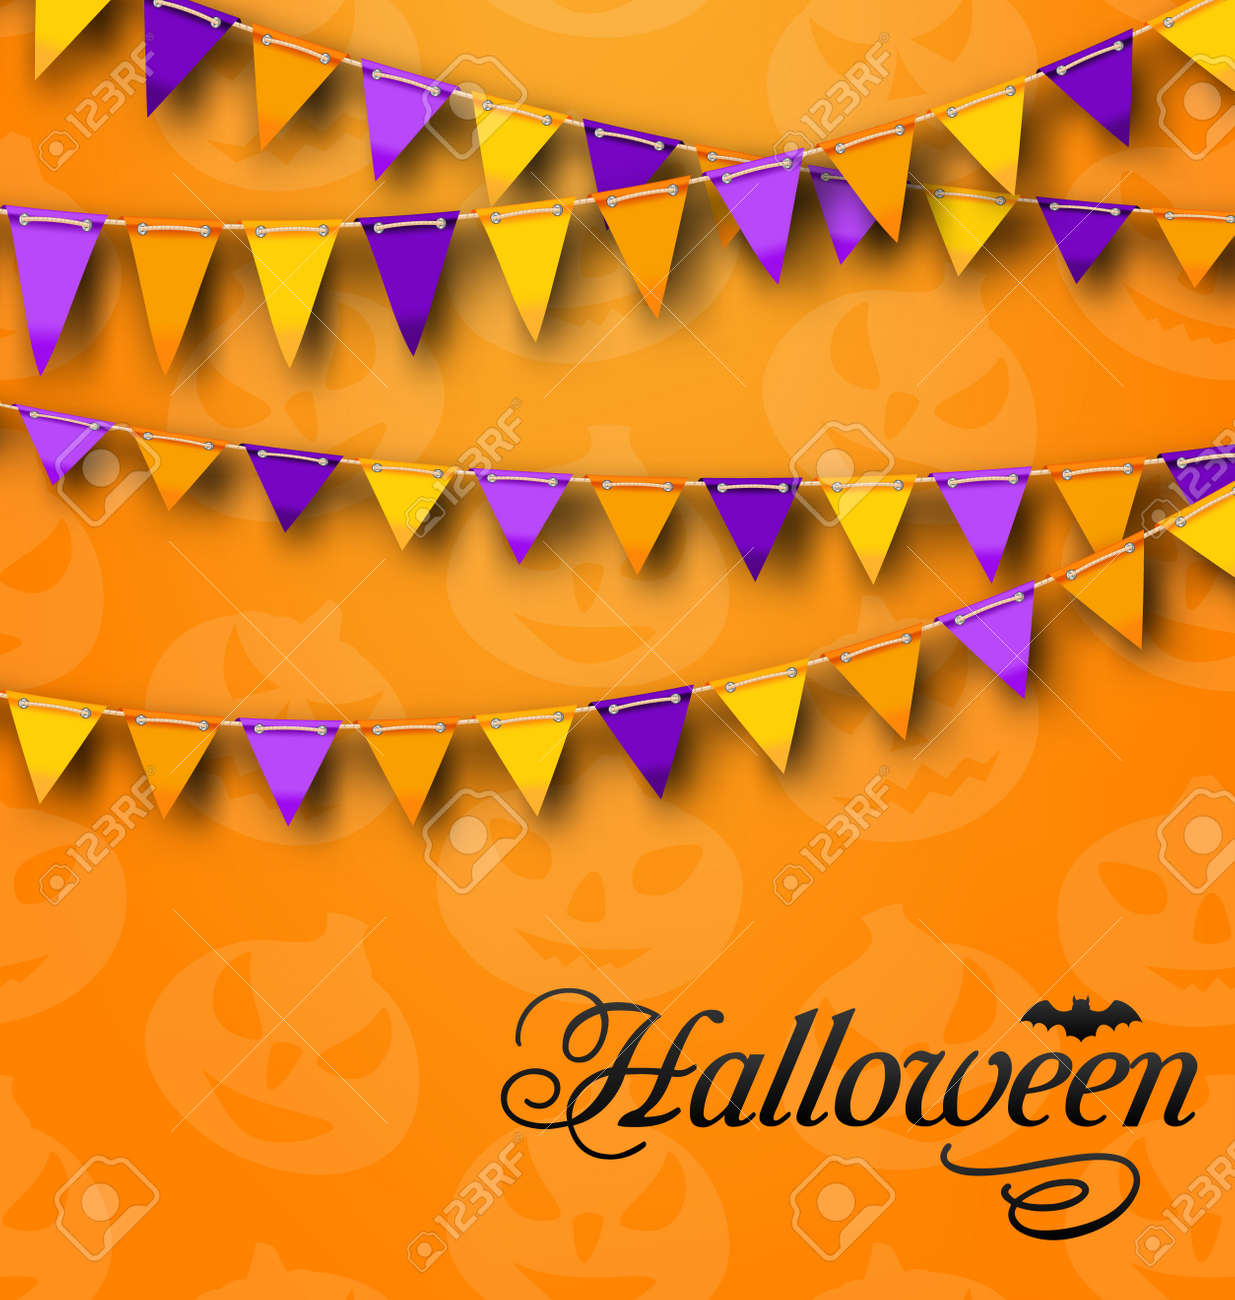 Party Feier Illustration Dekoration Mit Bunten Bunting Wimpel Für Halloween Party Feier Hintergrund